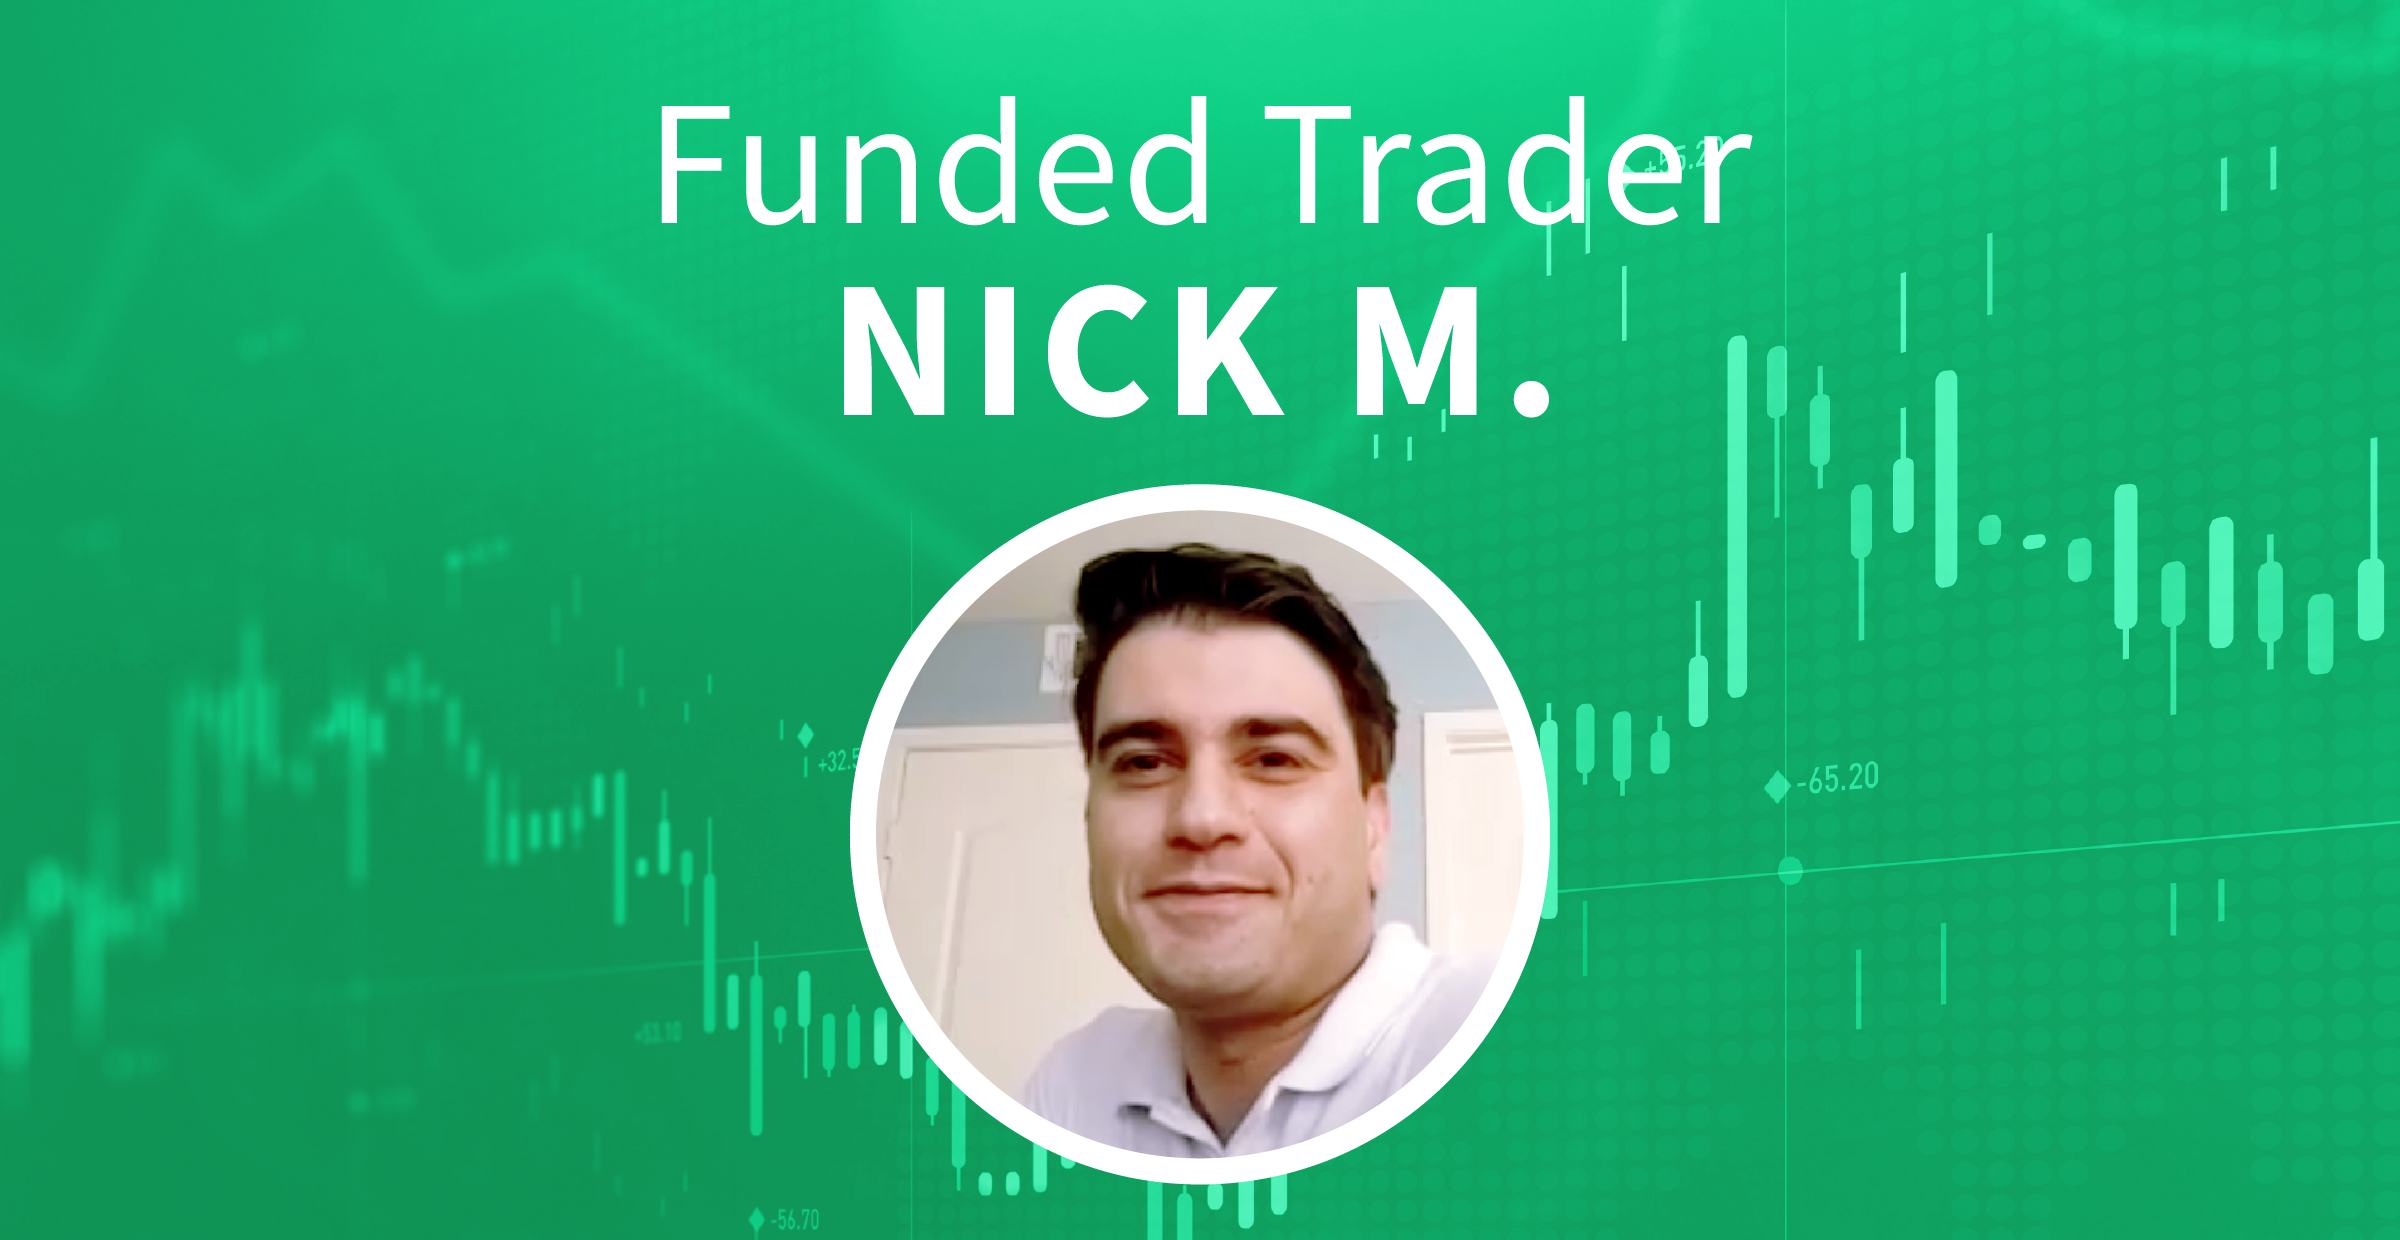 Funded Trader Nick M from Los Angeles